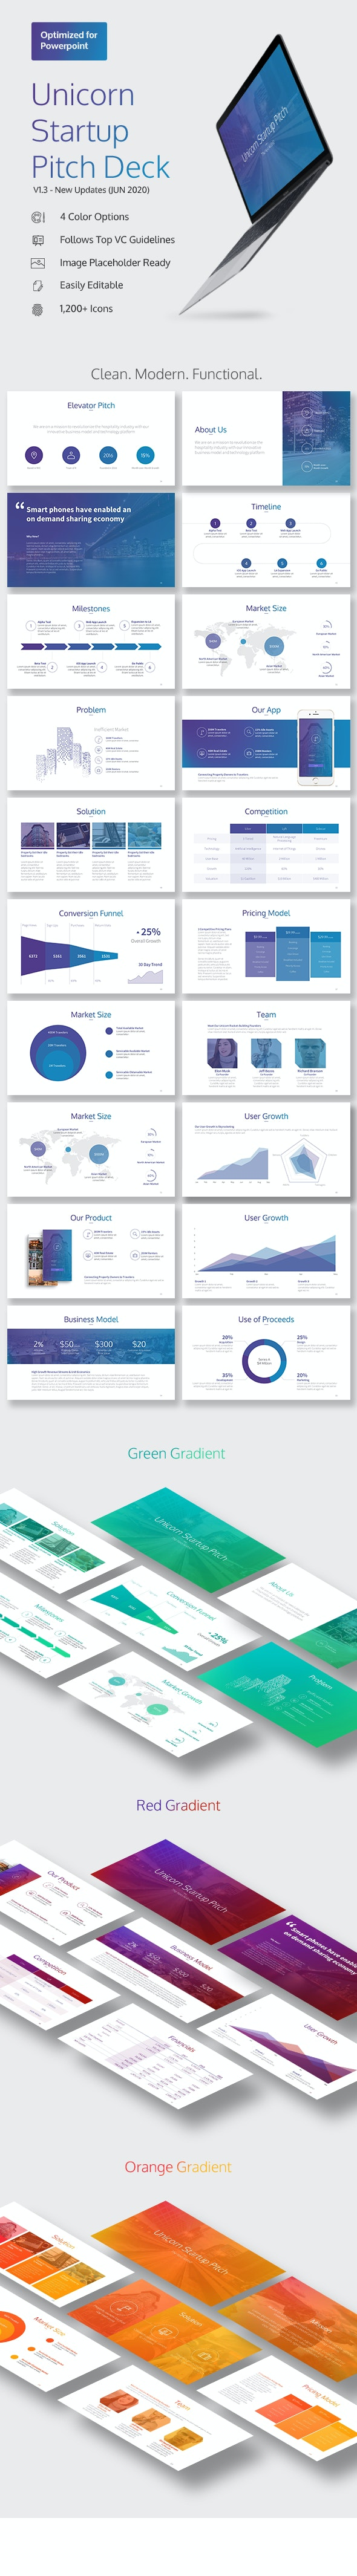 Unicorn Startup Pitch Deck (PPTX) - Pitch Deck PowerPoint Templates